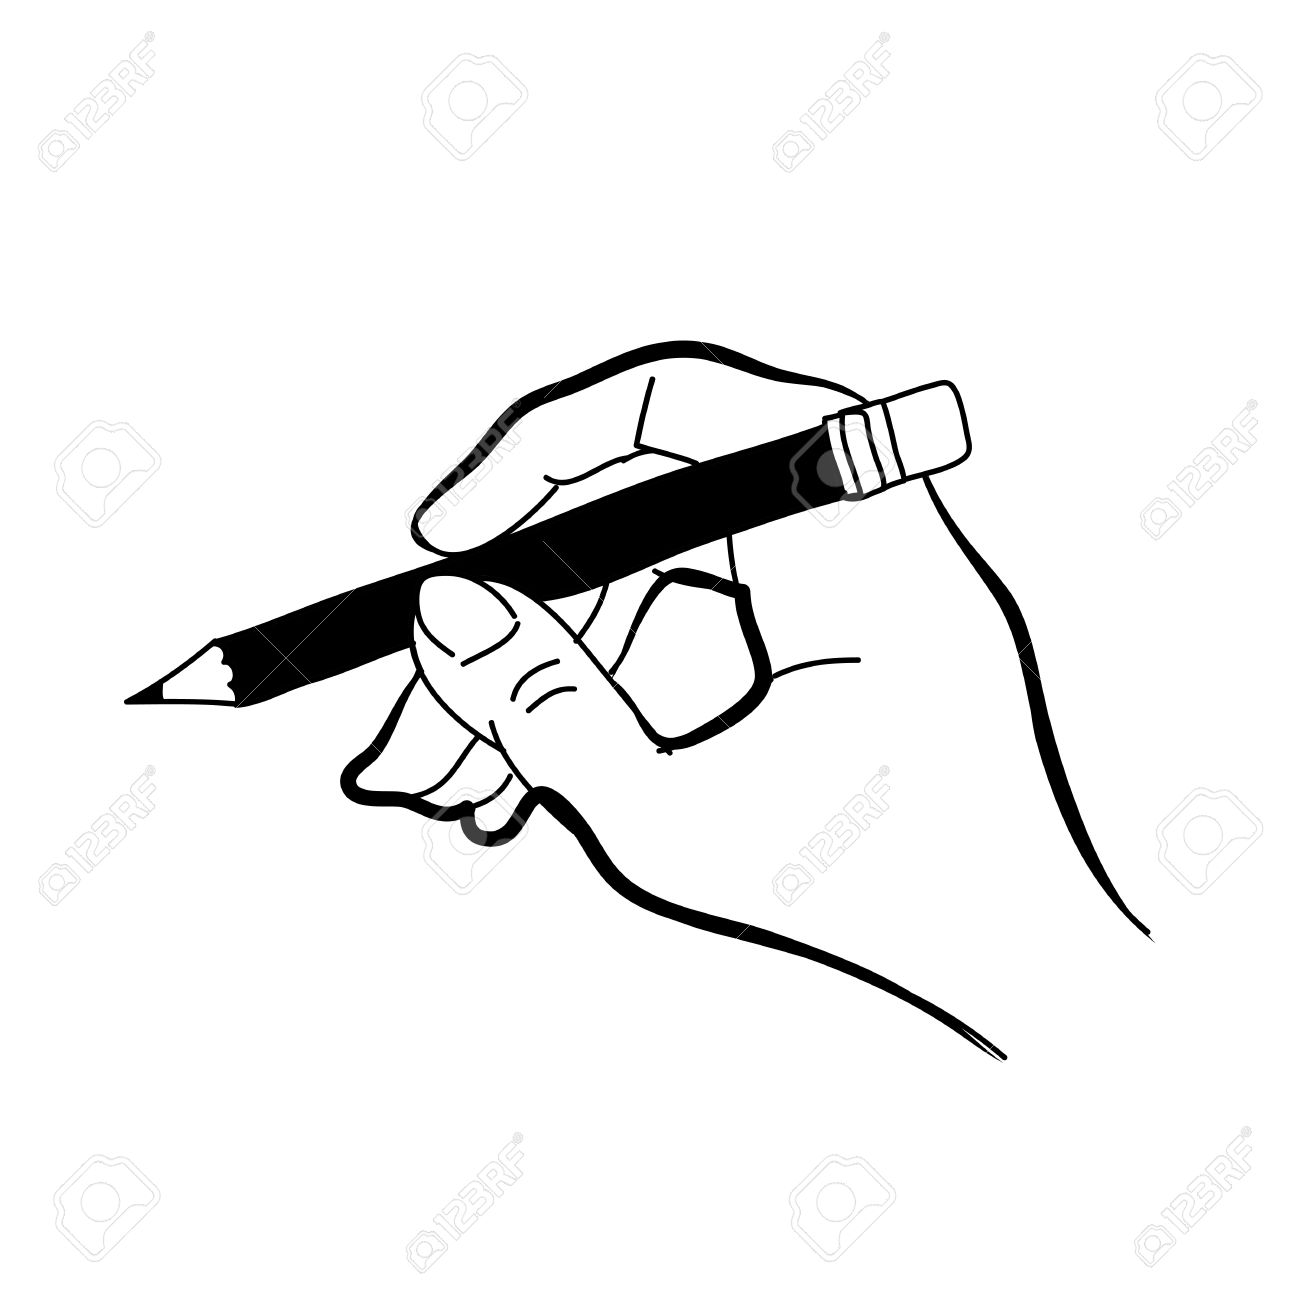 1300x1300 Hand Drawing Freehand Sketch Hand Holding Pencil For Design